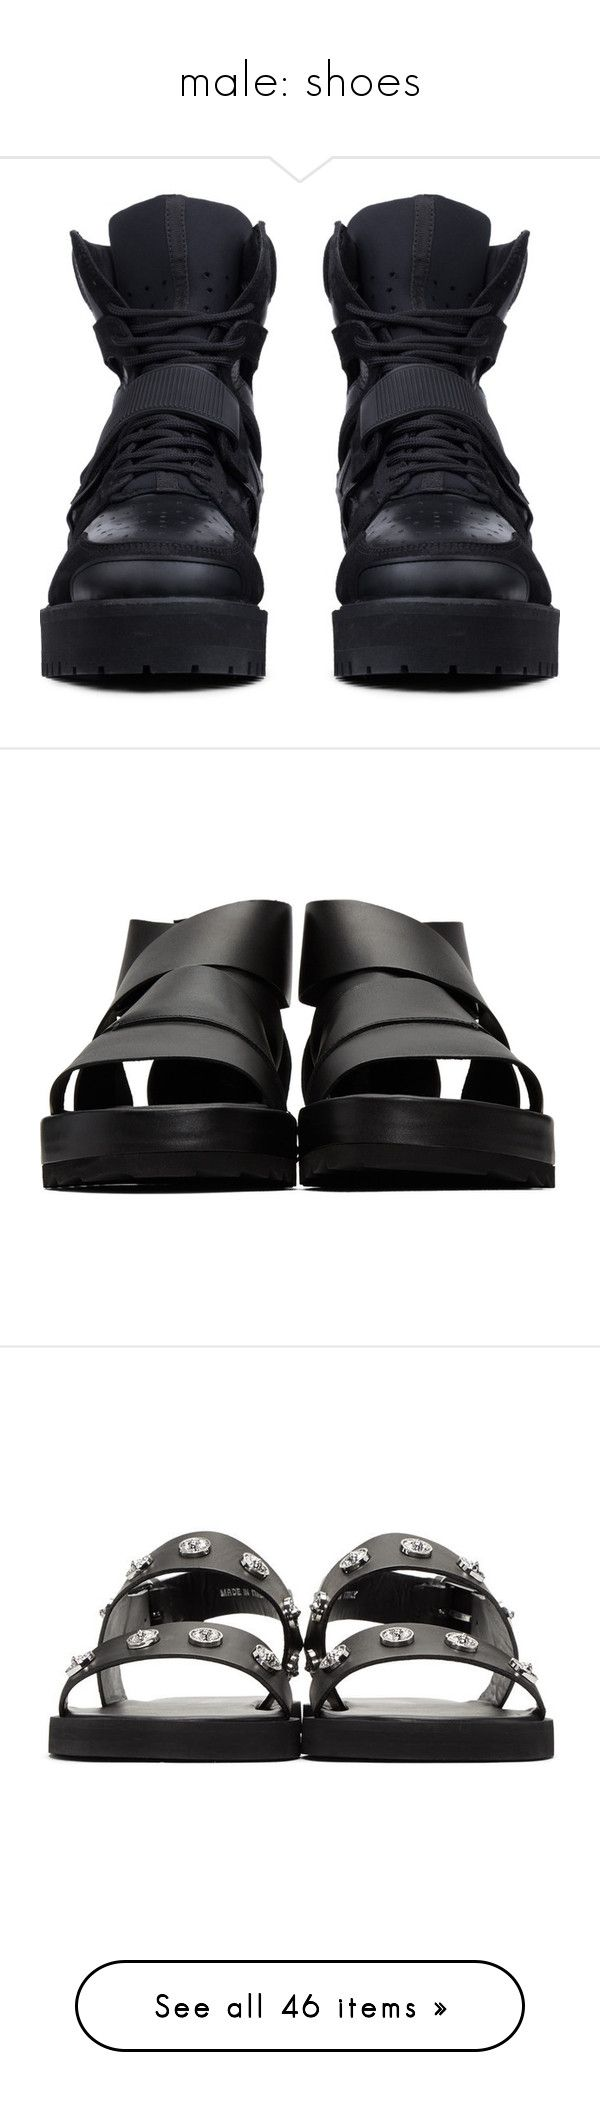 """male: shoes"" by l-x-ily ❤ liked on Polyvore featuring shoes, men's fashion, men's shoes, men's sneakers, mens black sneakers, mens slipon shoes, mens high top shoes, mens slip on shoes, mens slip on sneakers and men's sandals"